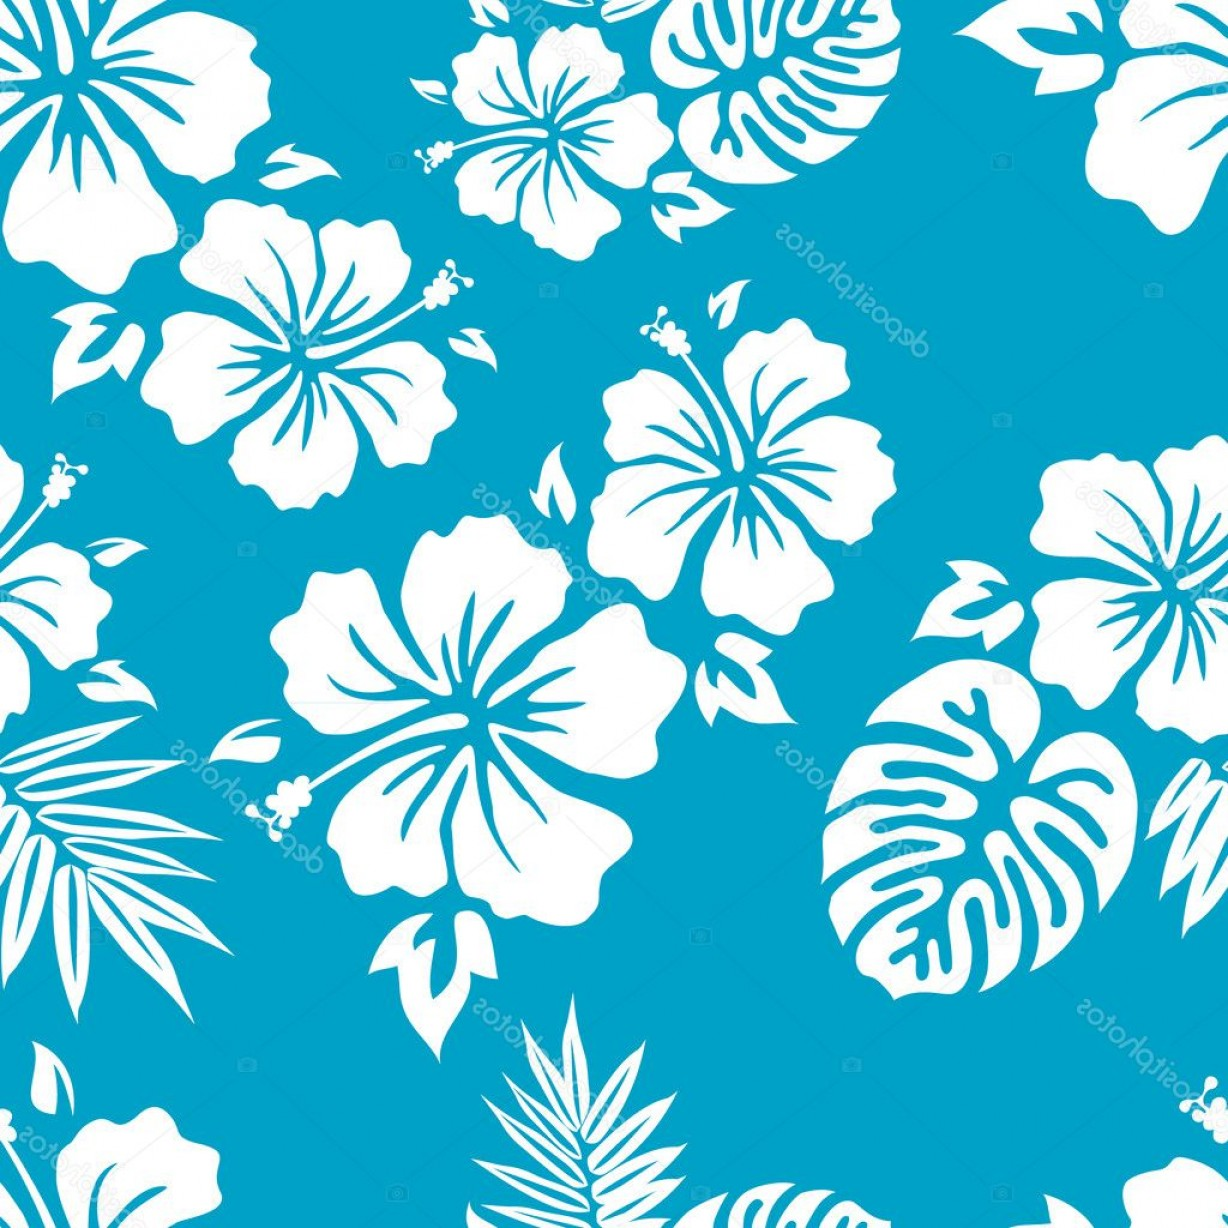 Hawaiian Pattern Vector: Stock Illustration Aloha Hawaiian Shirt Pattern